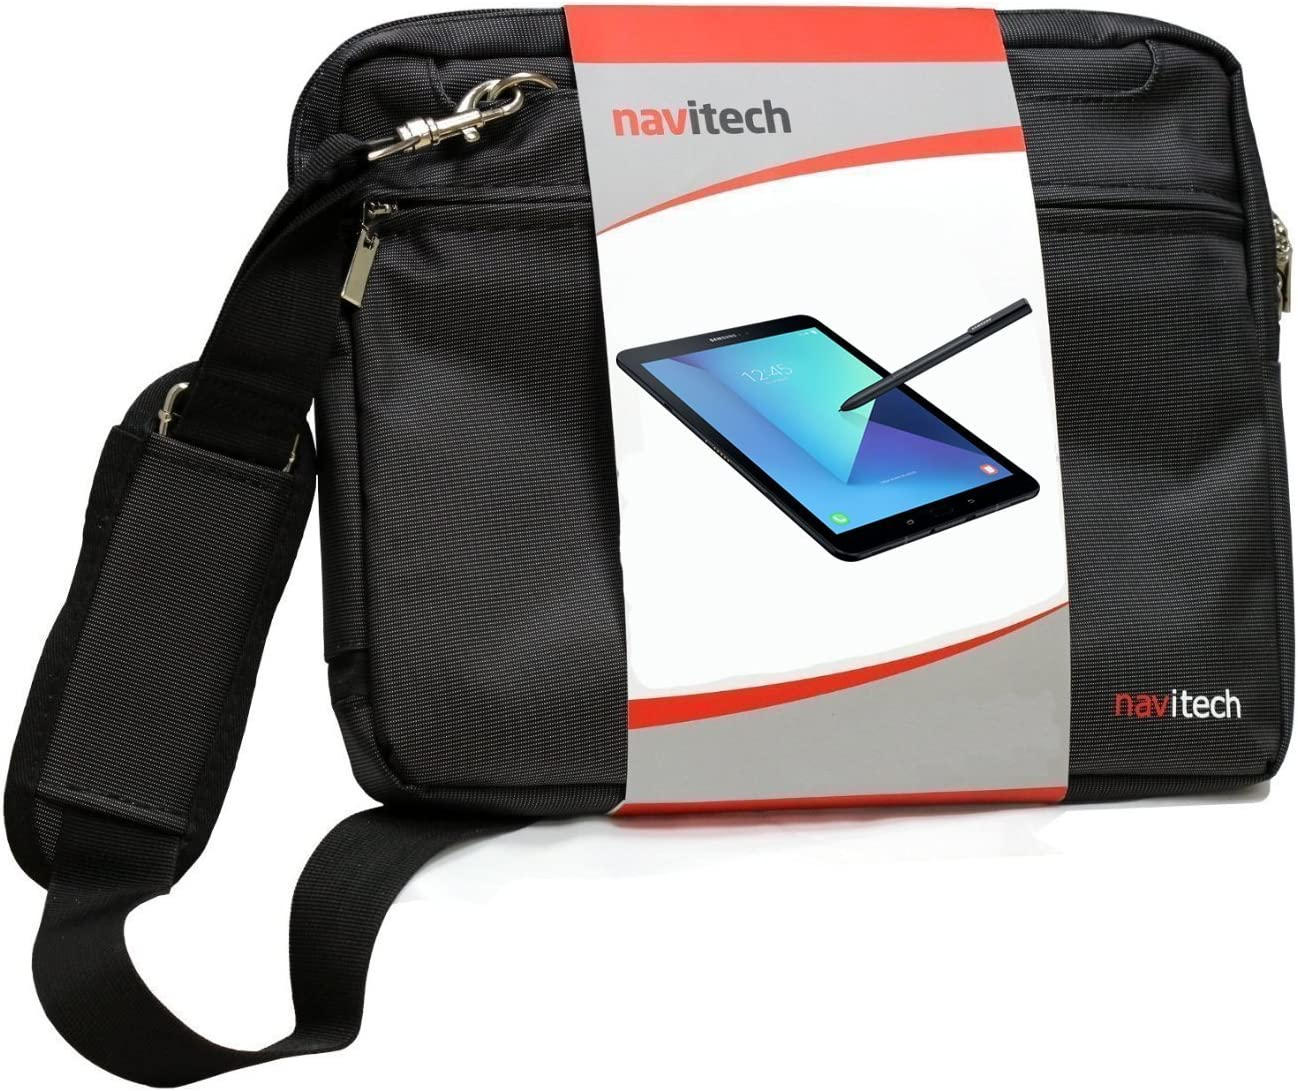 Navitech Black Sleek Premium Water Resistant Shock Absorbent Carry Bag Case Compatible with The The Acer Iconia One 10 Tablet B3-A40